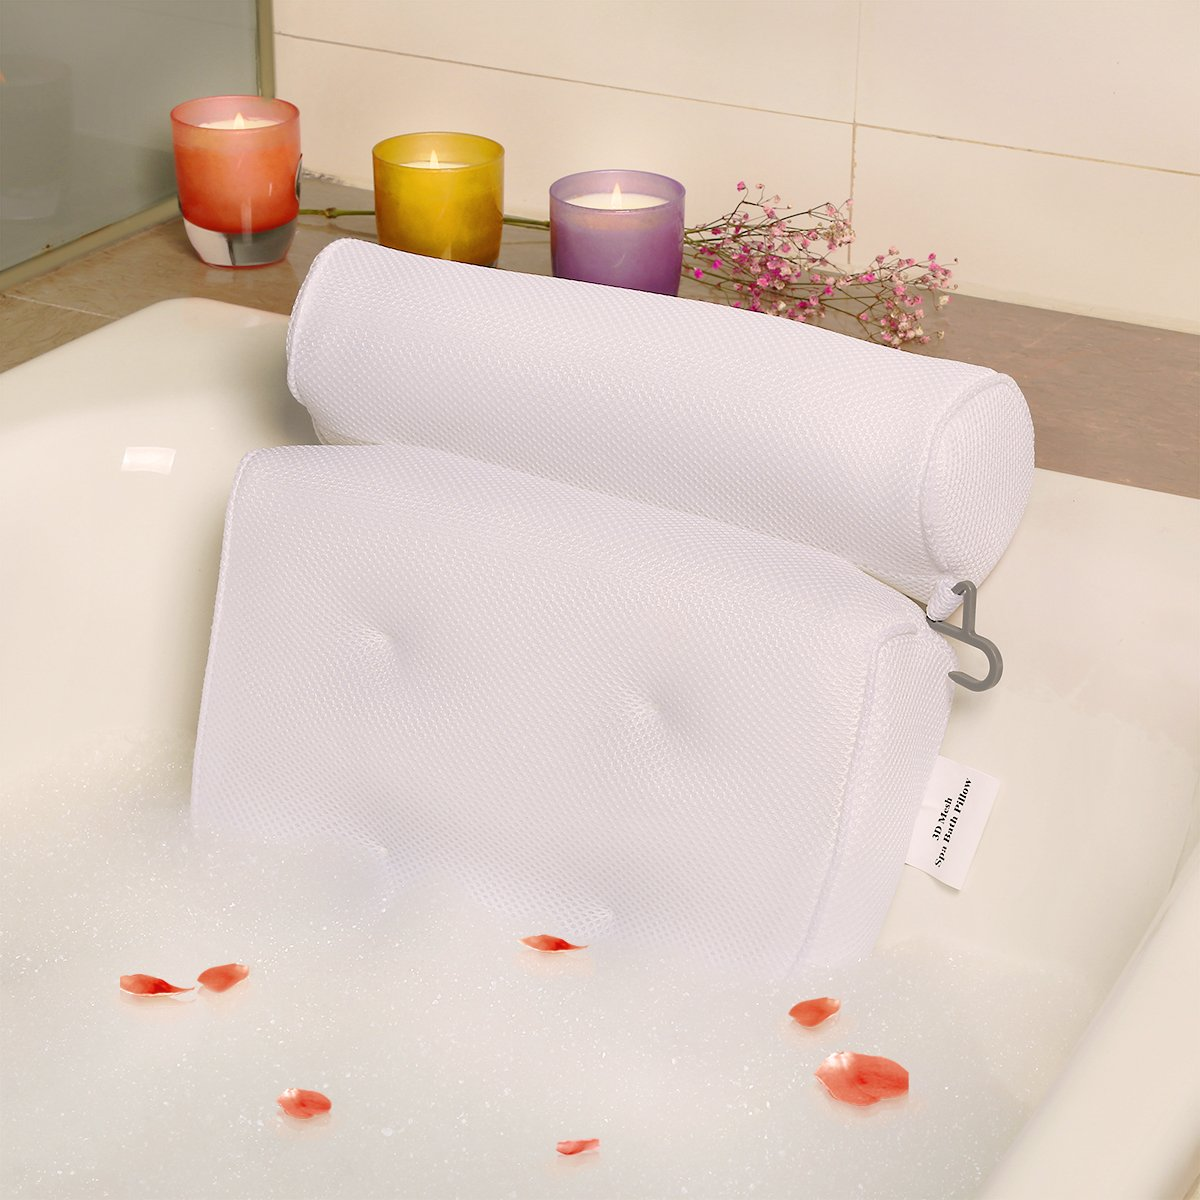 Bath-tub Pillow for Home Spa and Rest, Relaxation Bath tub Cushion with Strong Suction Cups, Mold & Mildew Resistant, 2-Panel Odor Free Bath Pillows - White